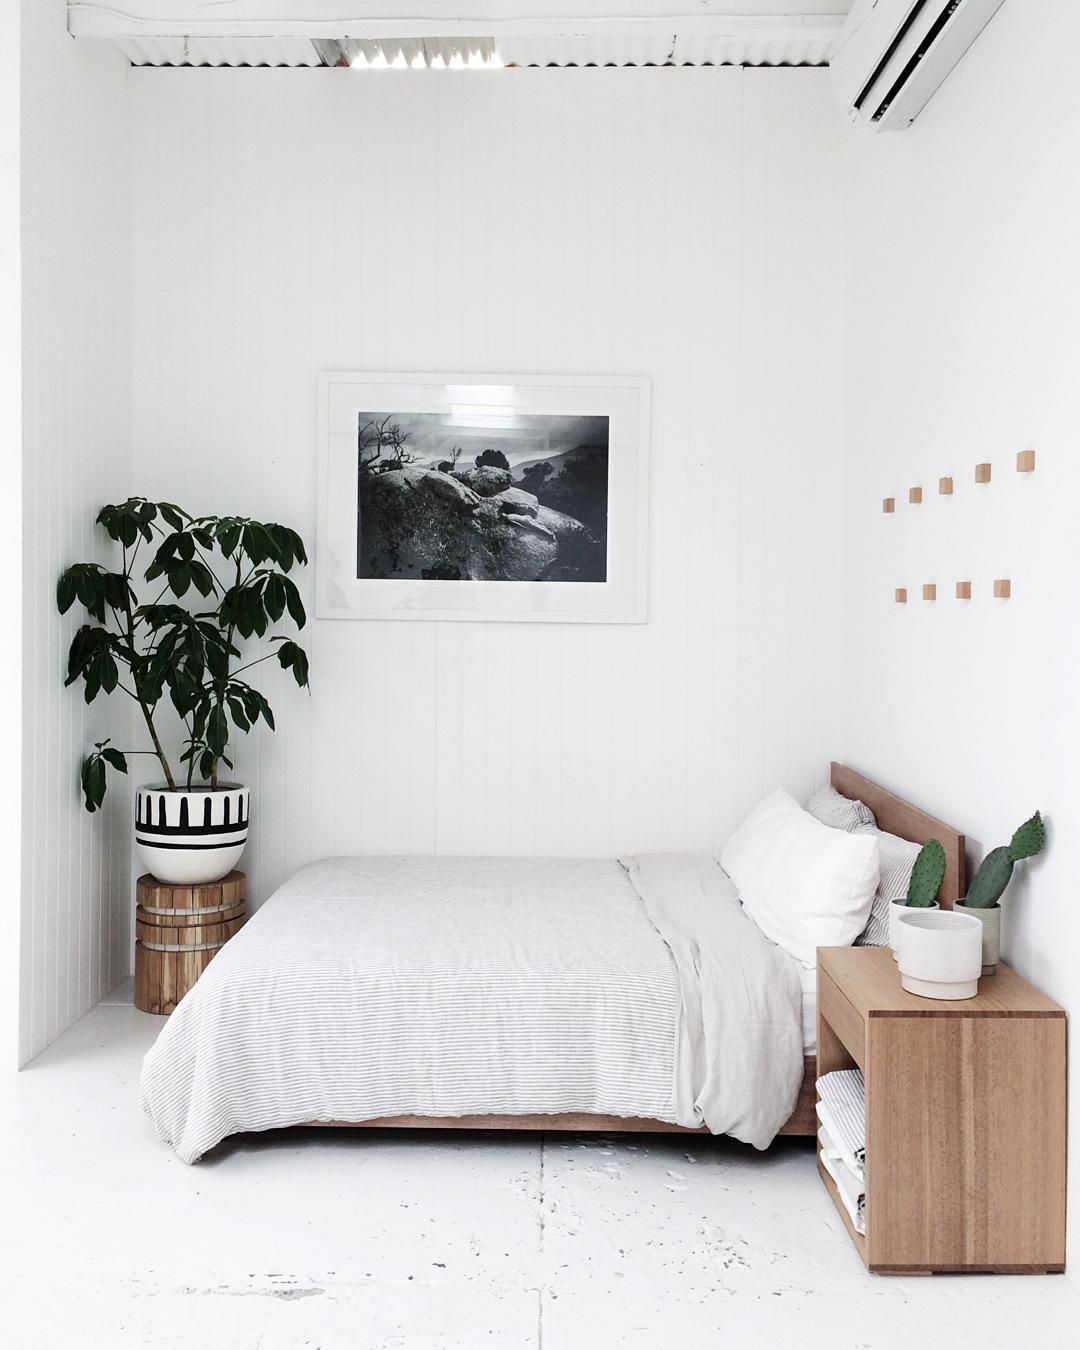 Take A Look At This Unique Scandinavian Home Decor Www Delightfull Eu Blog Scandinavianh Minimalist Bedroom Design Bedroom Interior Minimalist Bedroom Decor